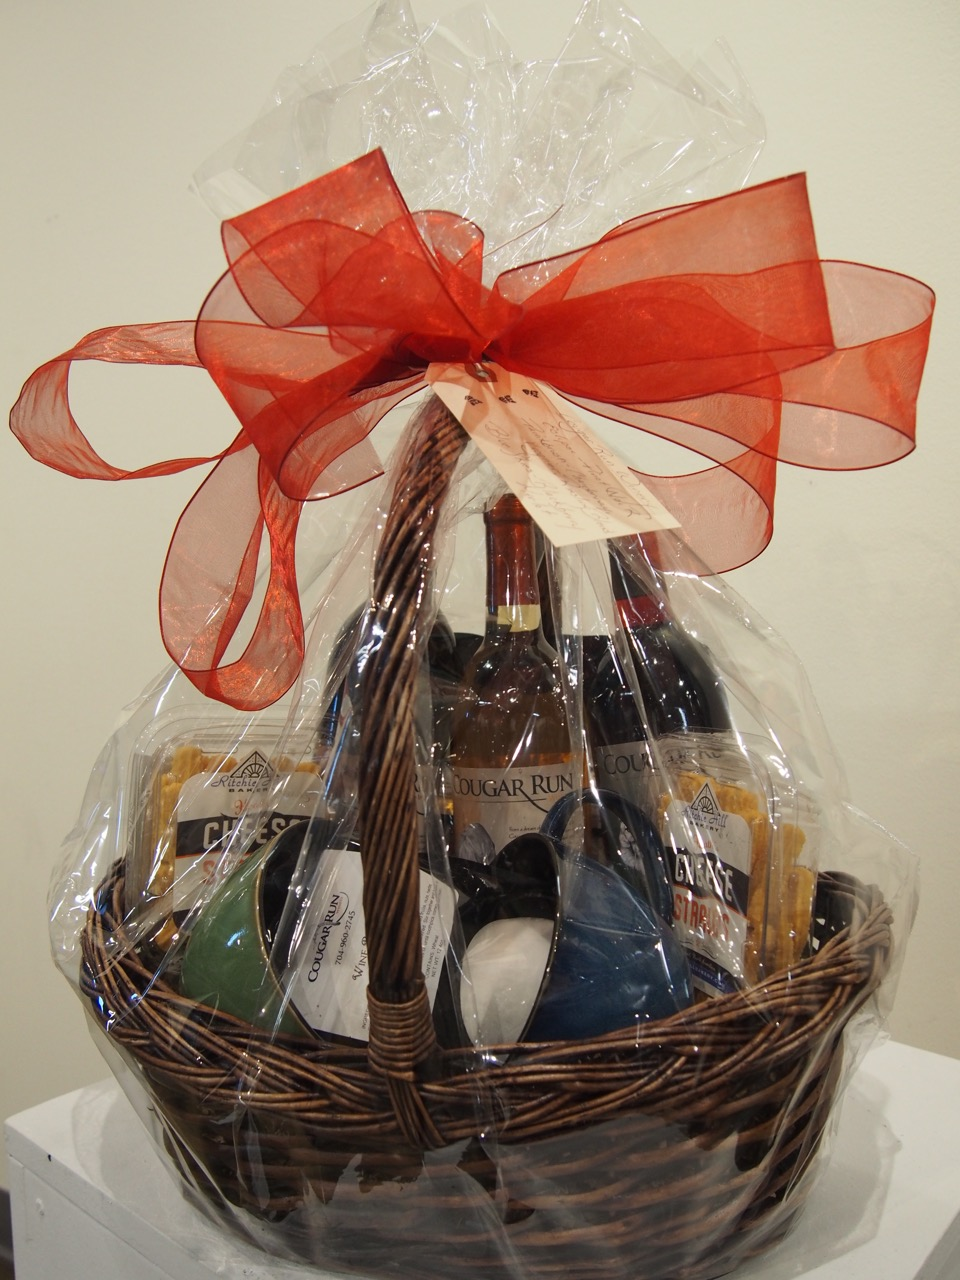 $90 Gift Basket from Cougar Run Winery